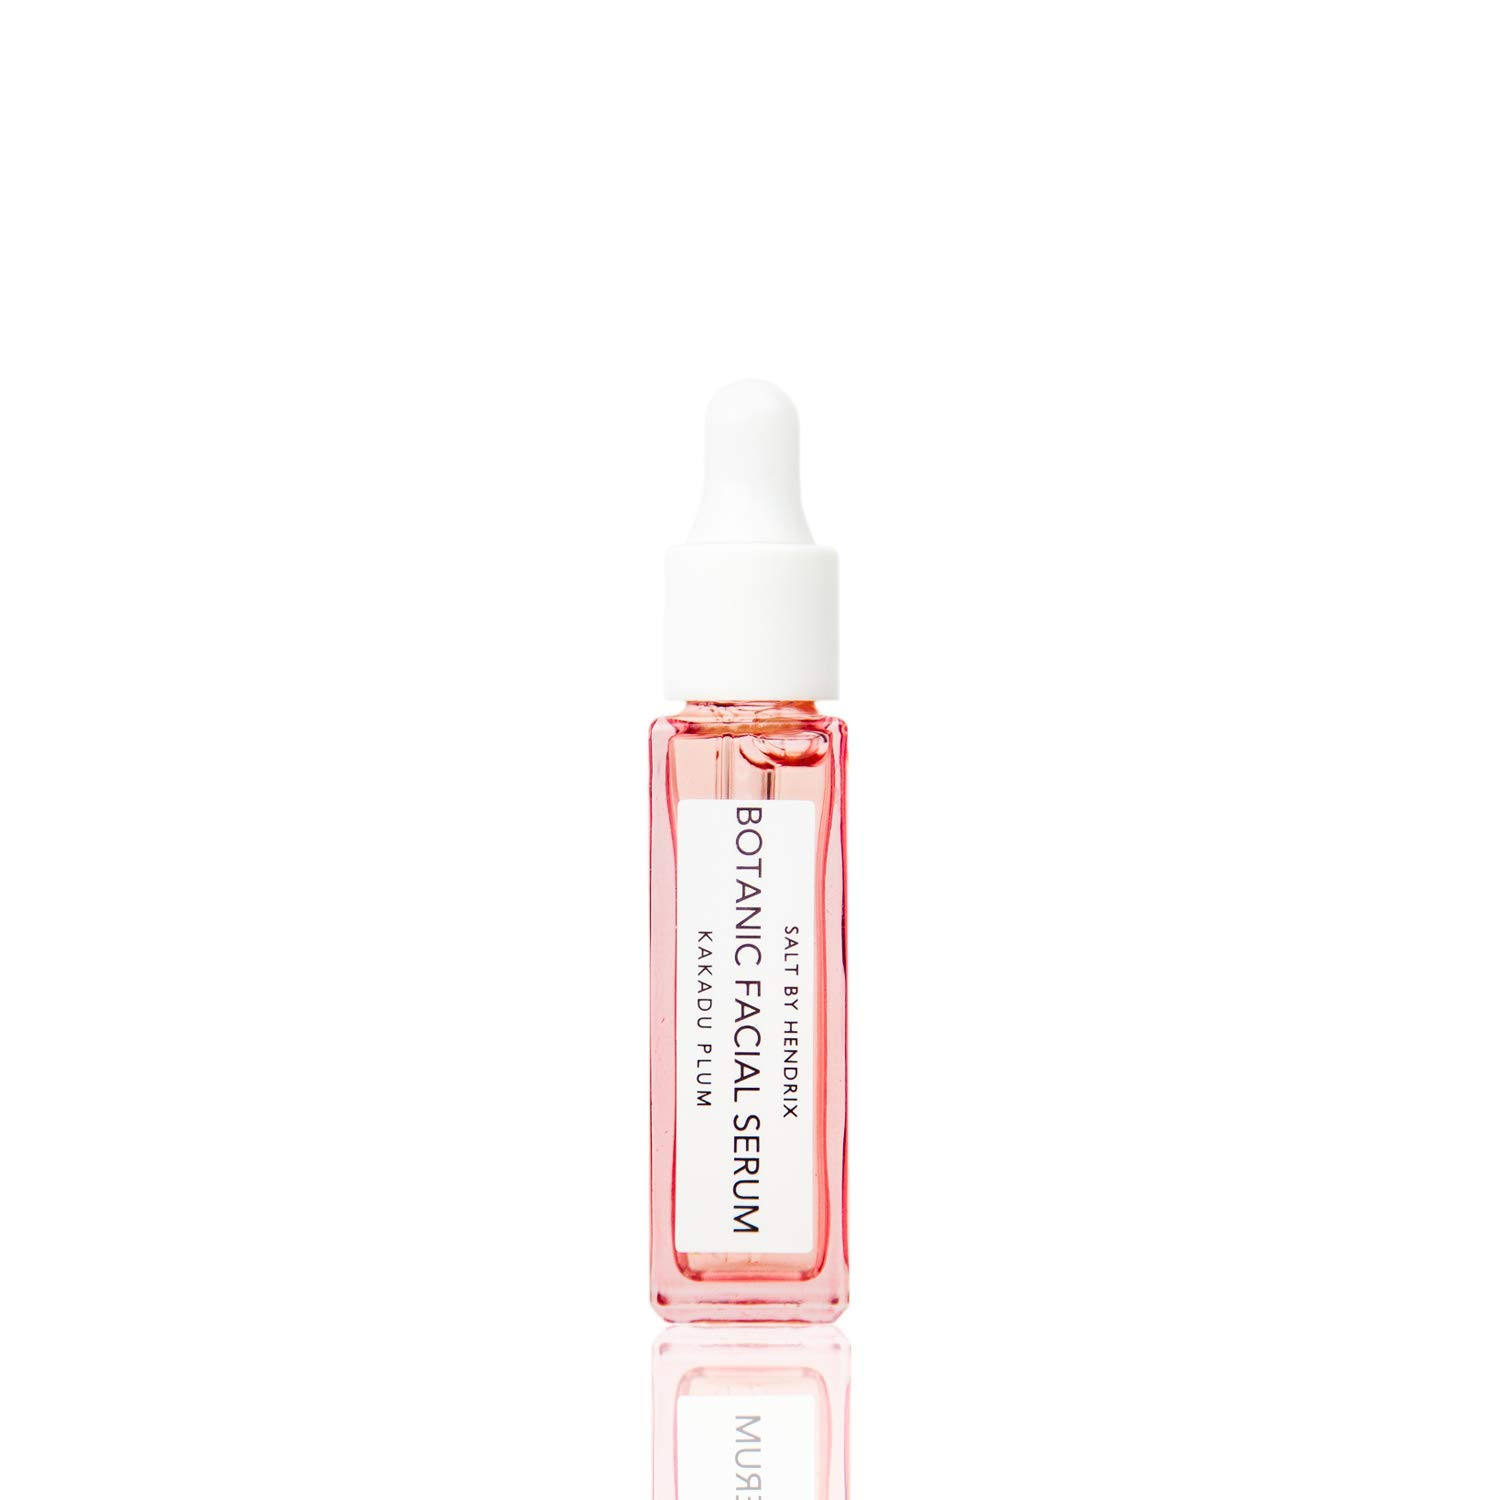 Salt by Hendrix - Natural Serum Cle Botanic Facial Sale Special Price Lightweight New life